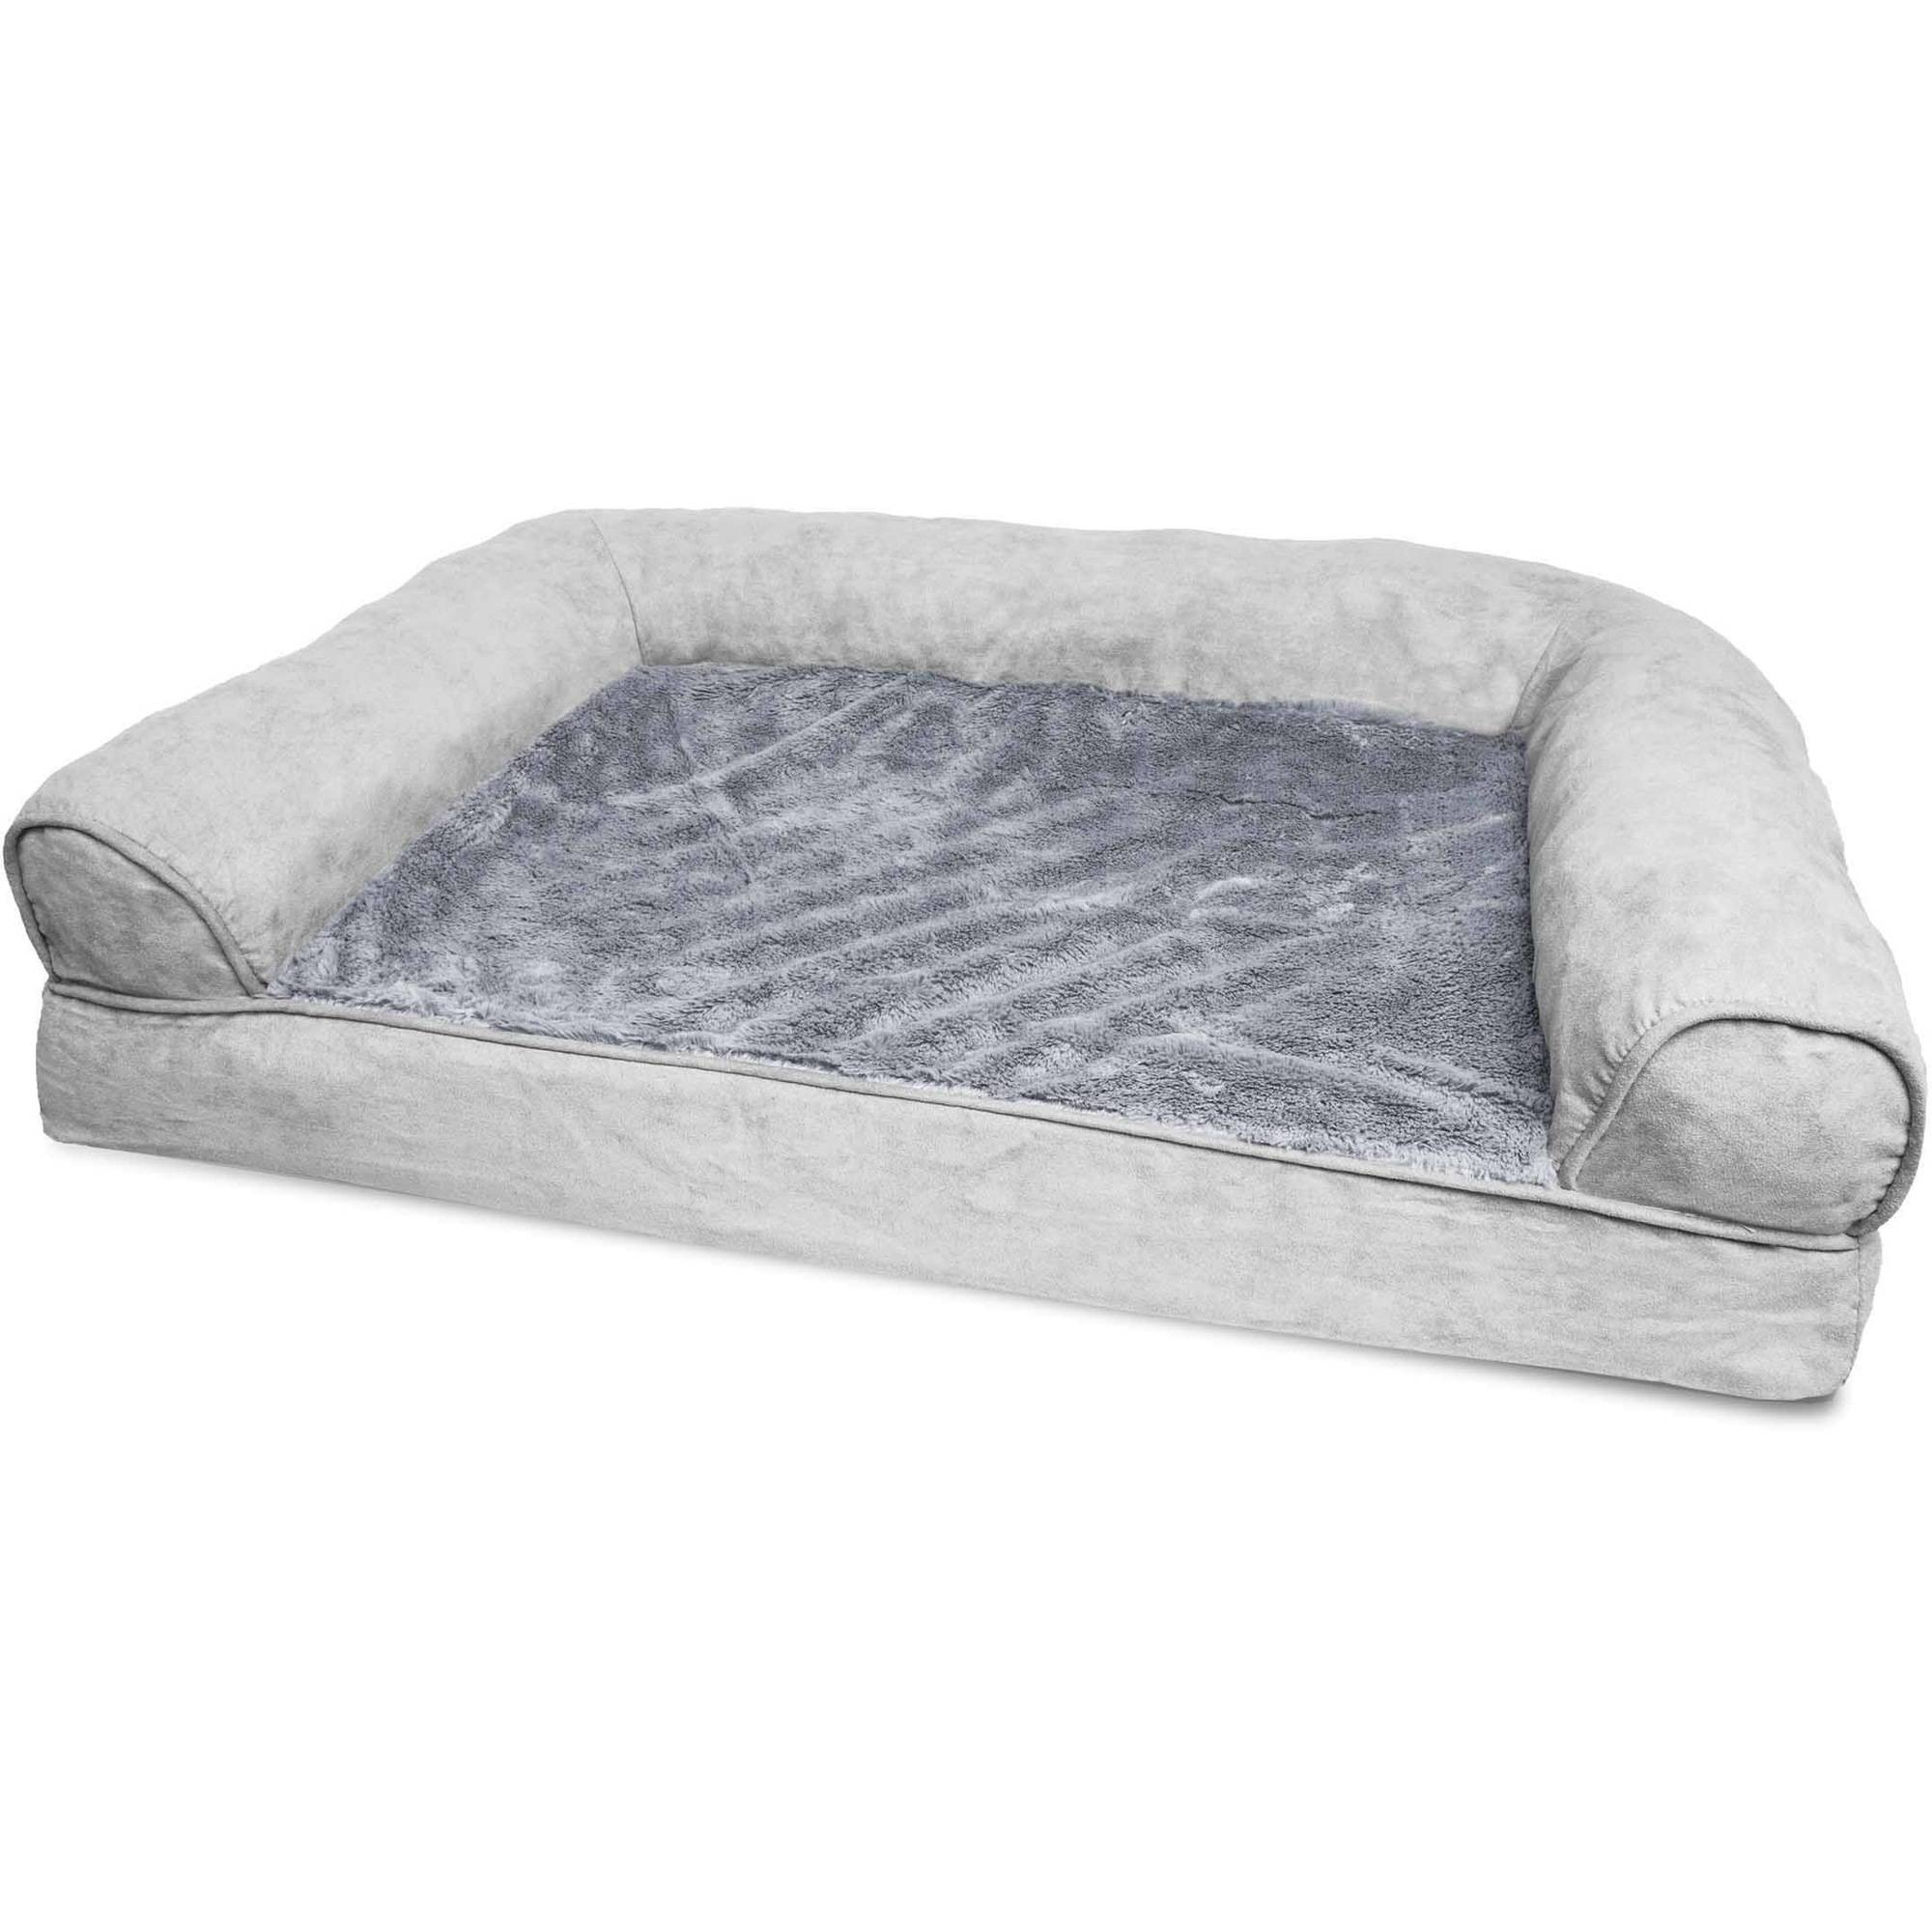 orthopedic sofa modern sleeper sofas for small es furhaven plush dog bed pet ebay